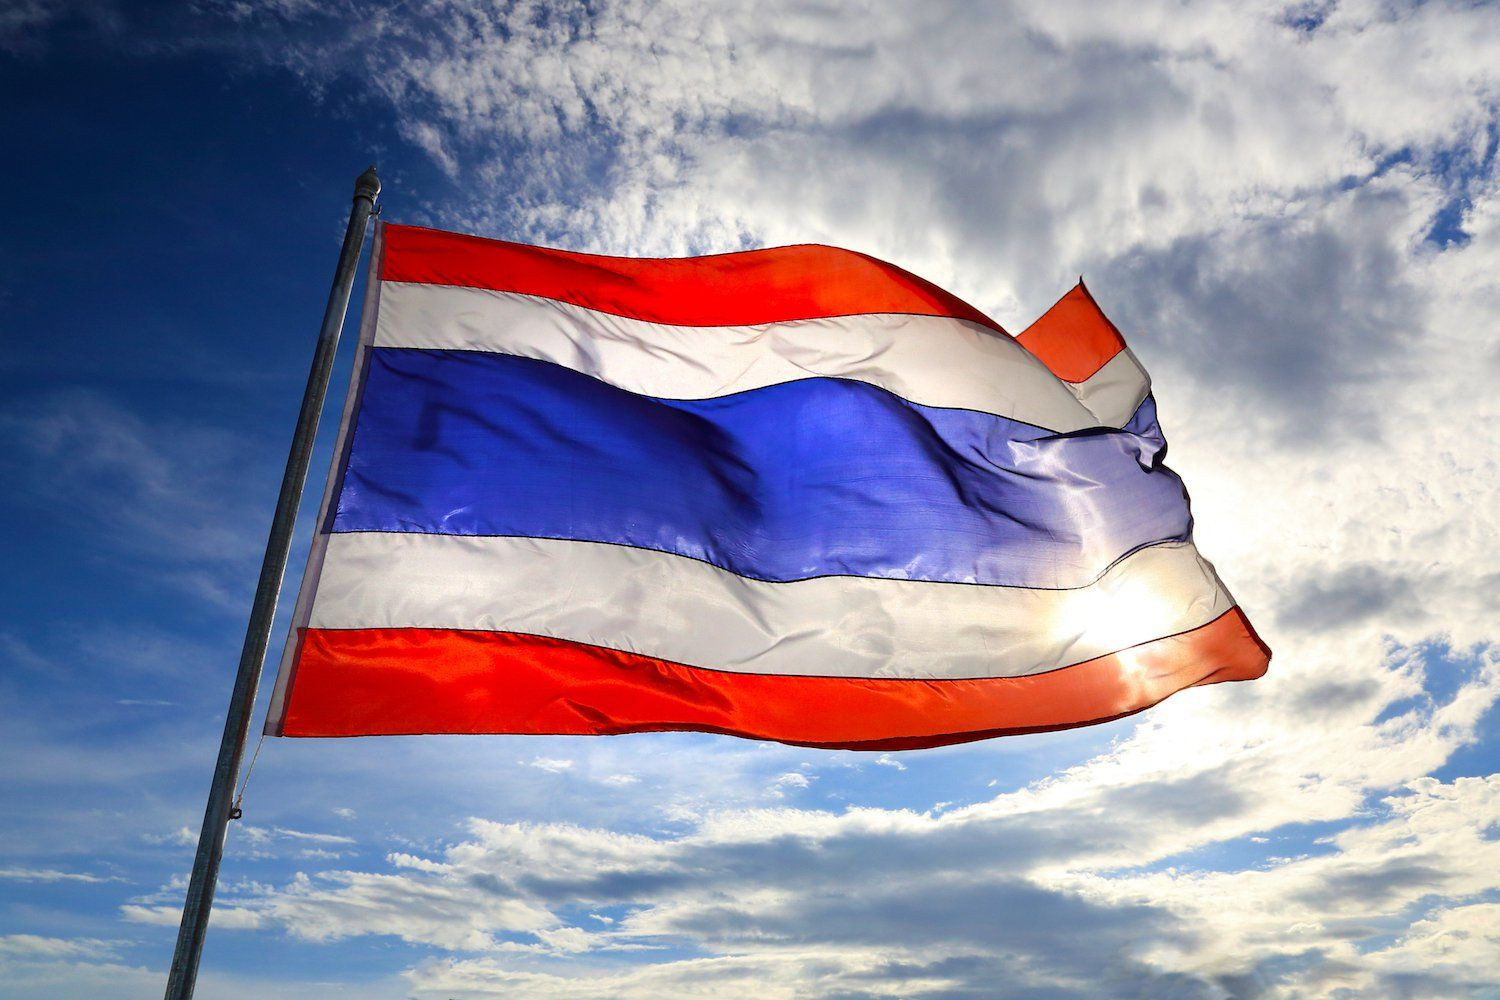 Thailand S New Licensing Rule That Governs Initial Coin Offerings Icos Has Gained Interests From Companies Setting Out To Offer Token Sales A Thai Lan Bangkok